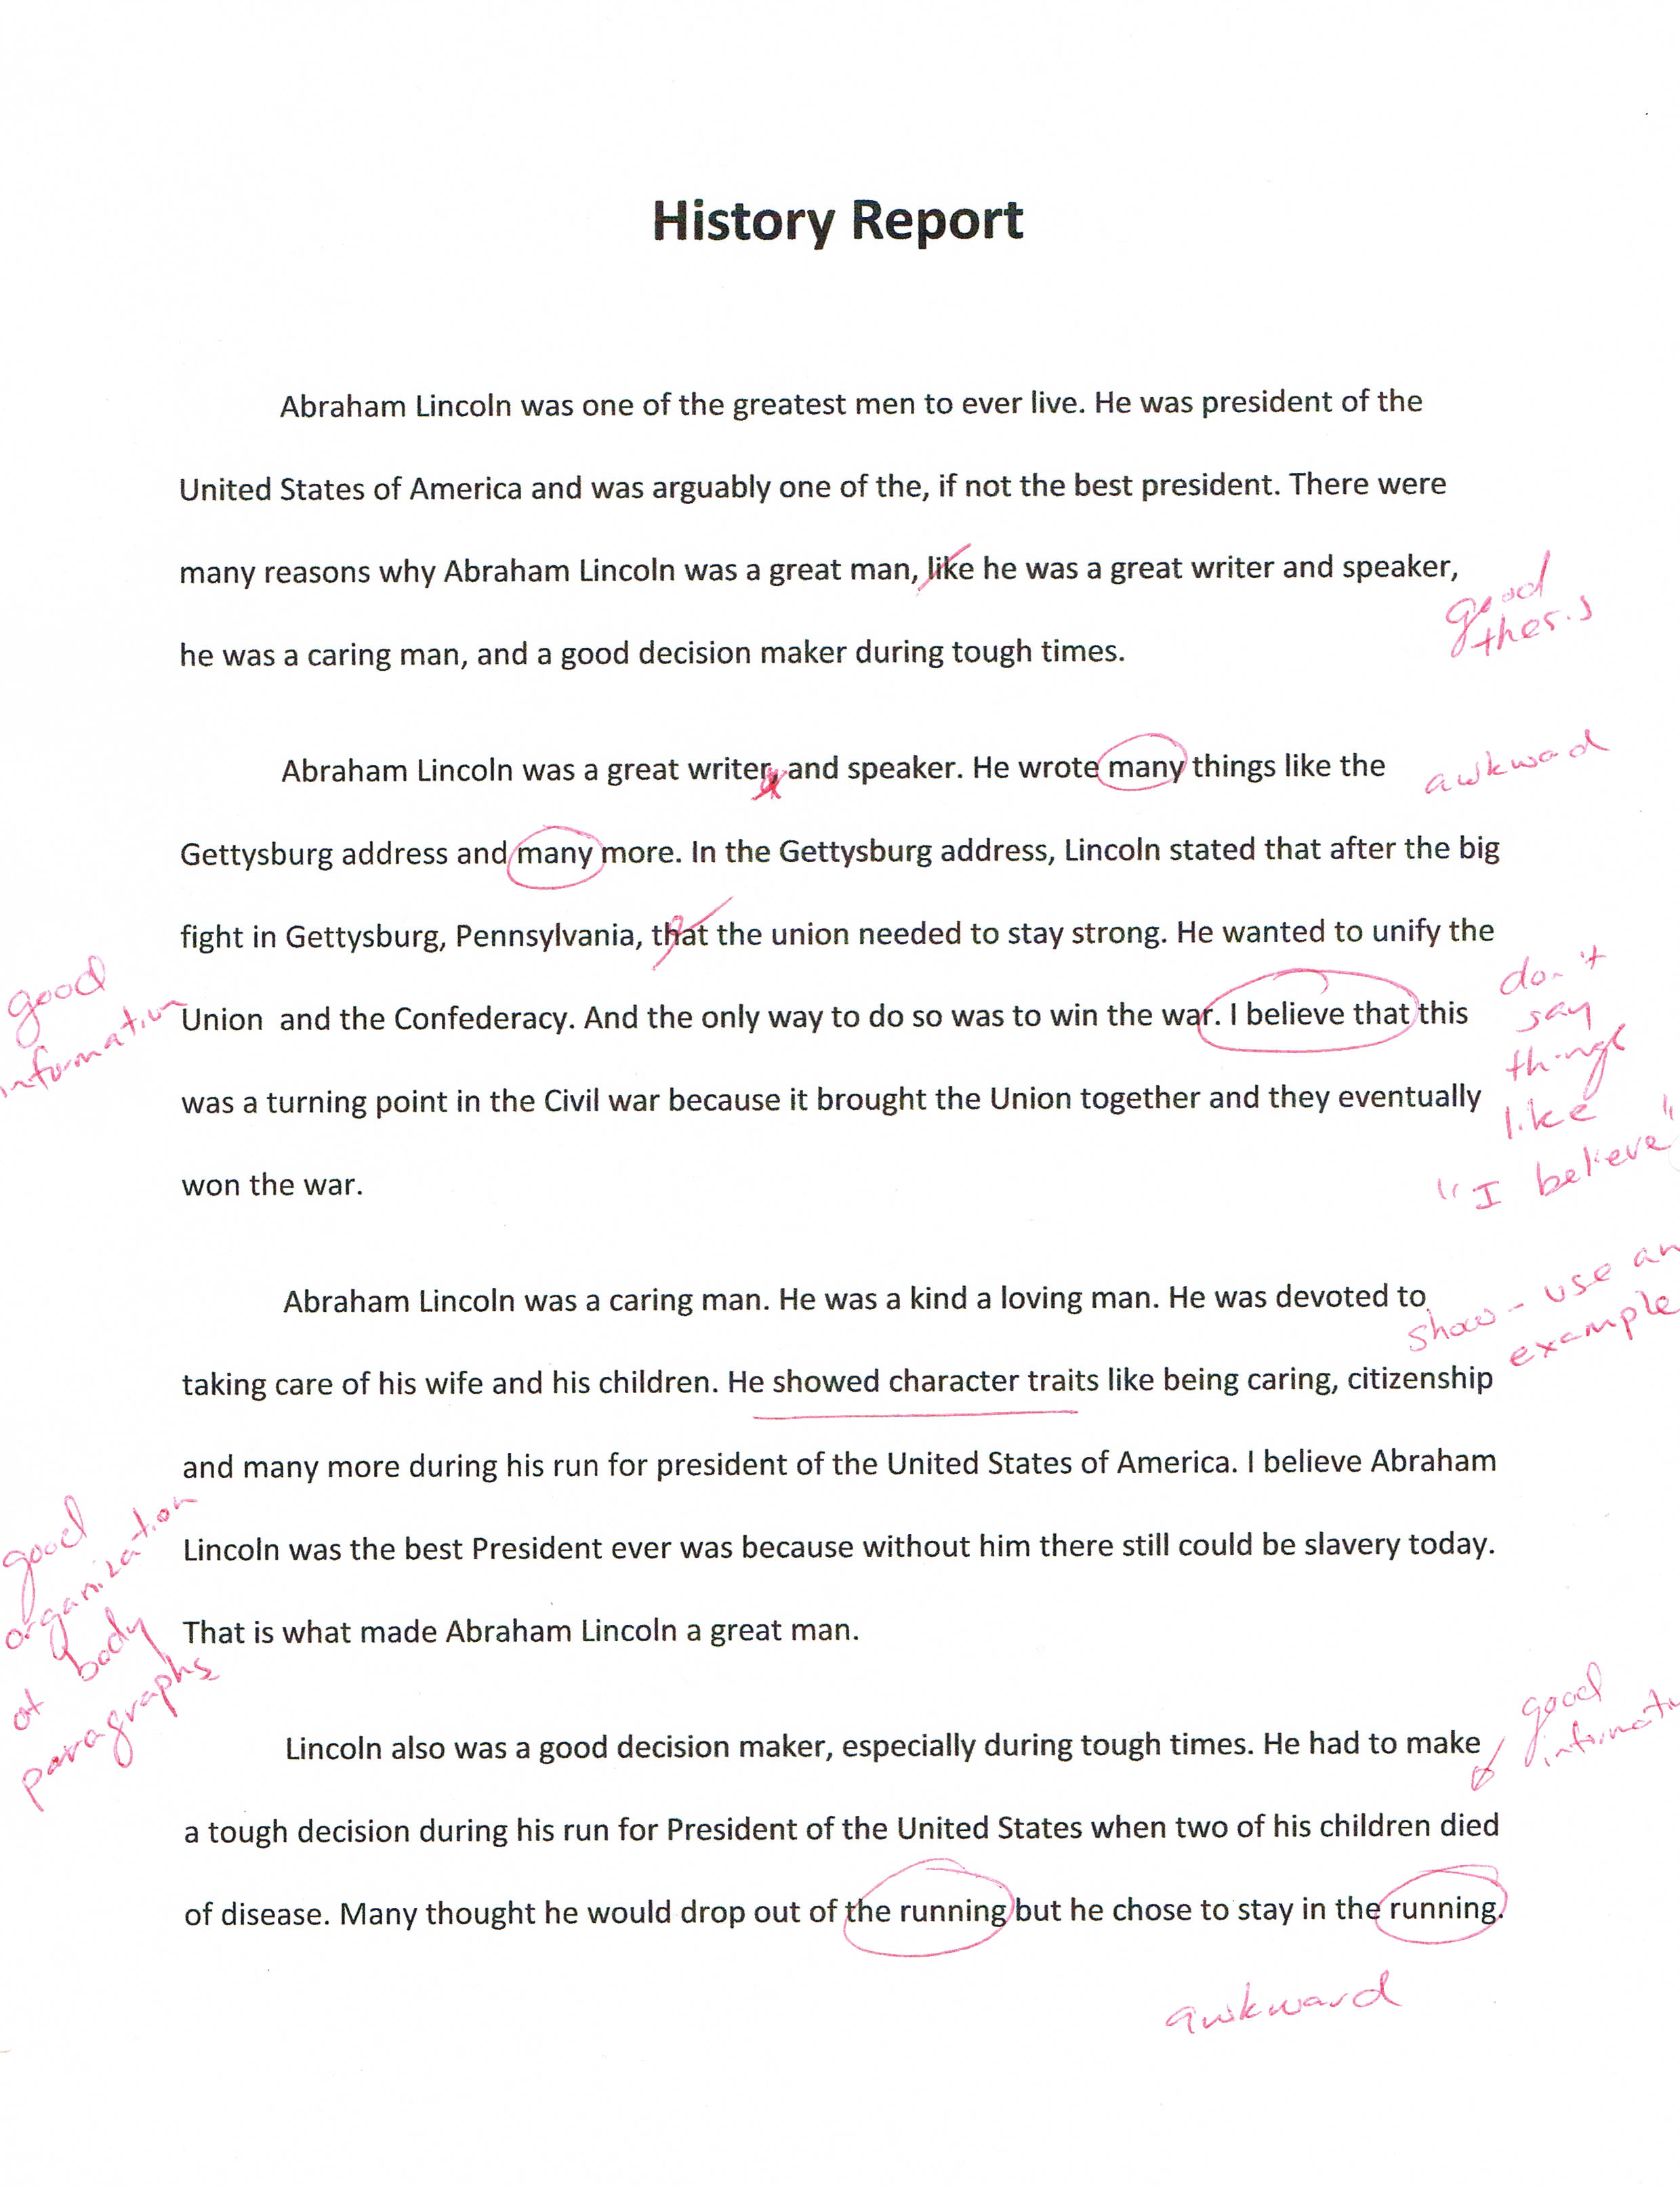 Examples of one paragraph essay